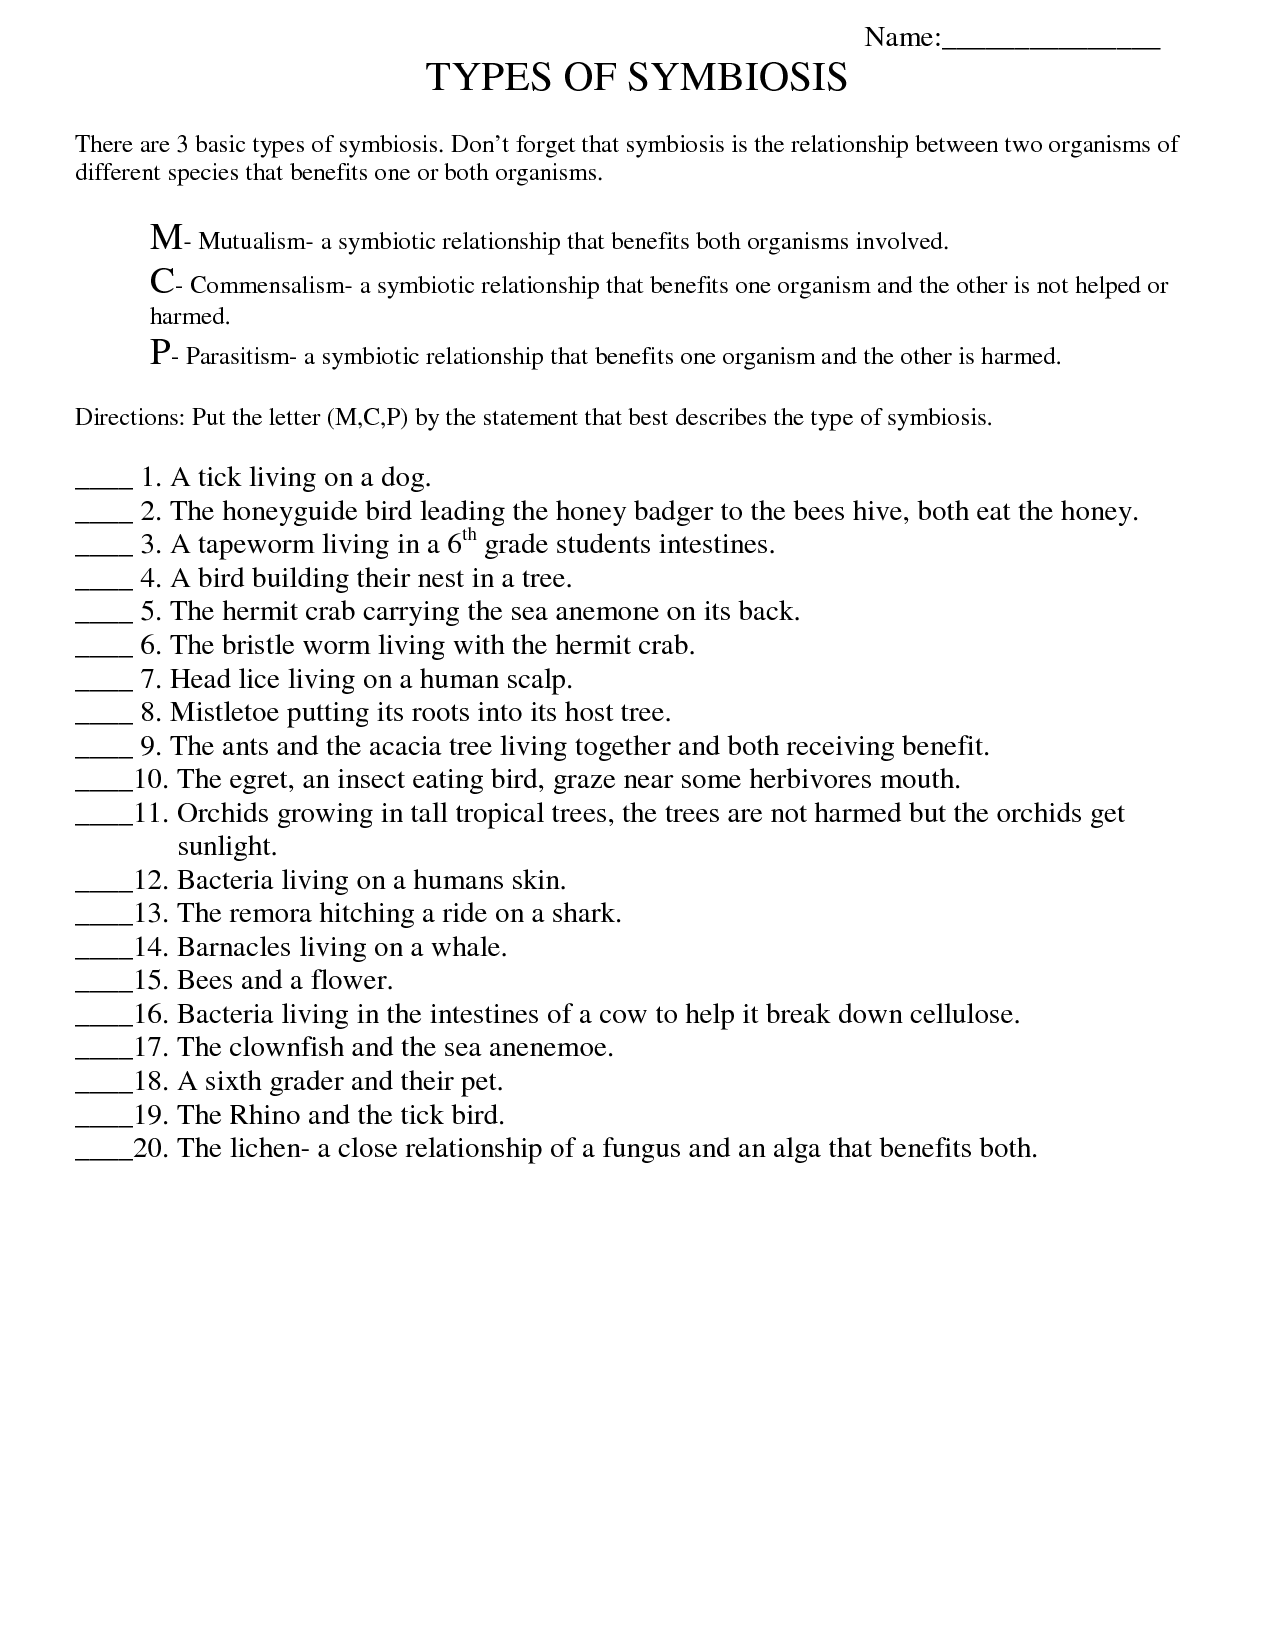 Symbiosis Worksheet Symbiosis Worksheet For 5th Grade With Symbiosis Worksheet With Answer Free Science Worksheets Relationship Worksheets Science Worksheets